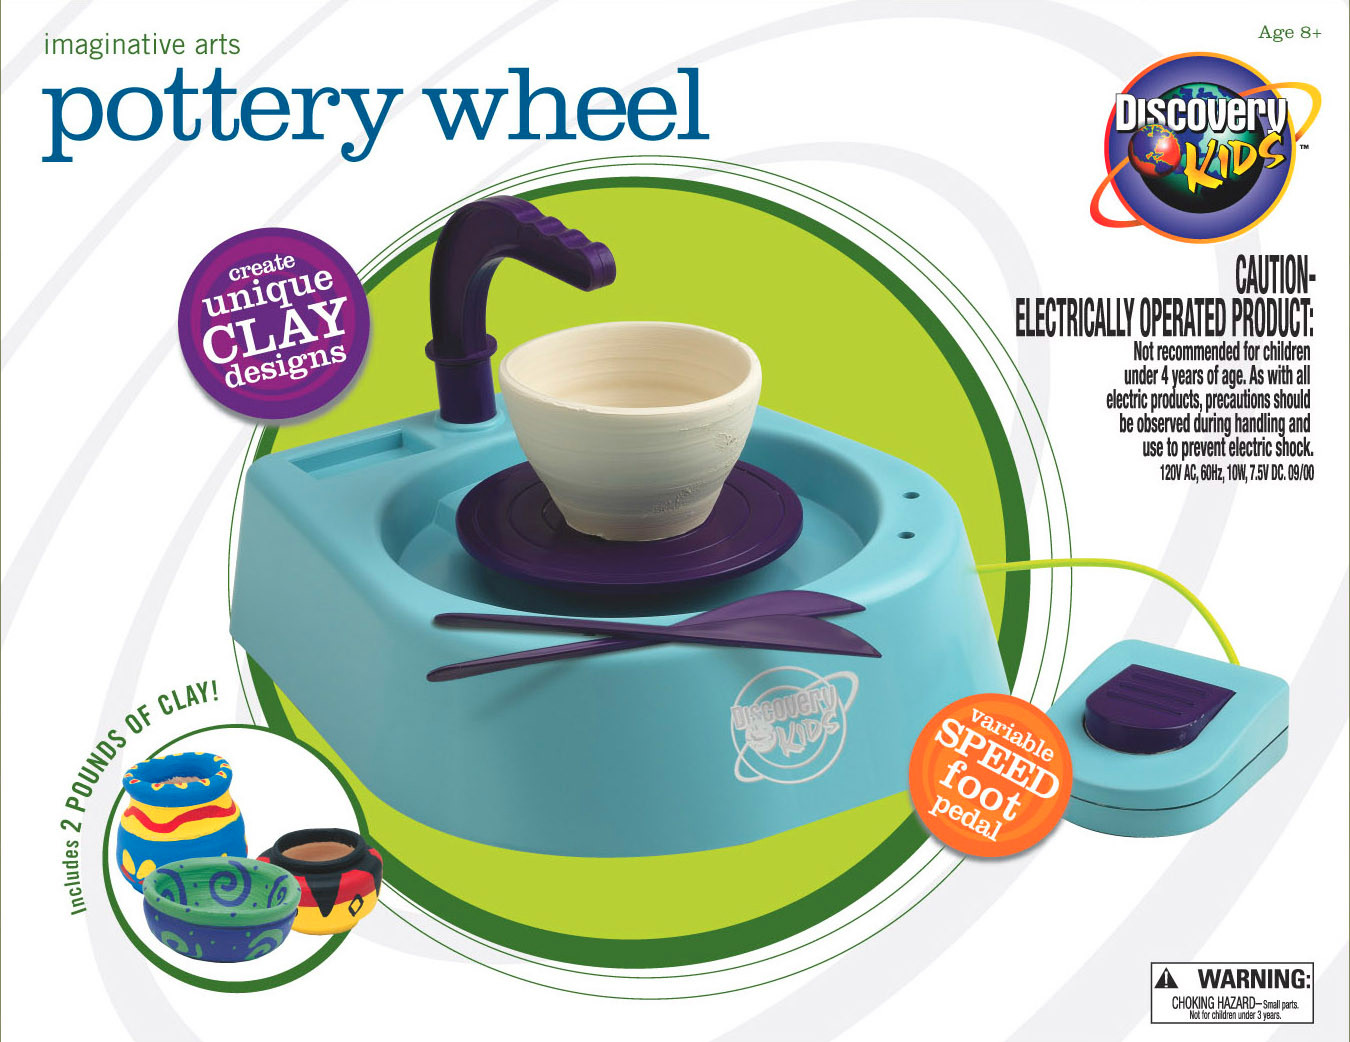 Picture of recalled Pottery Wheel Kit